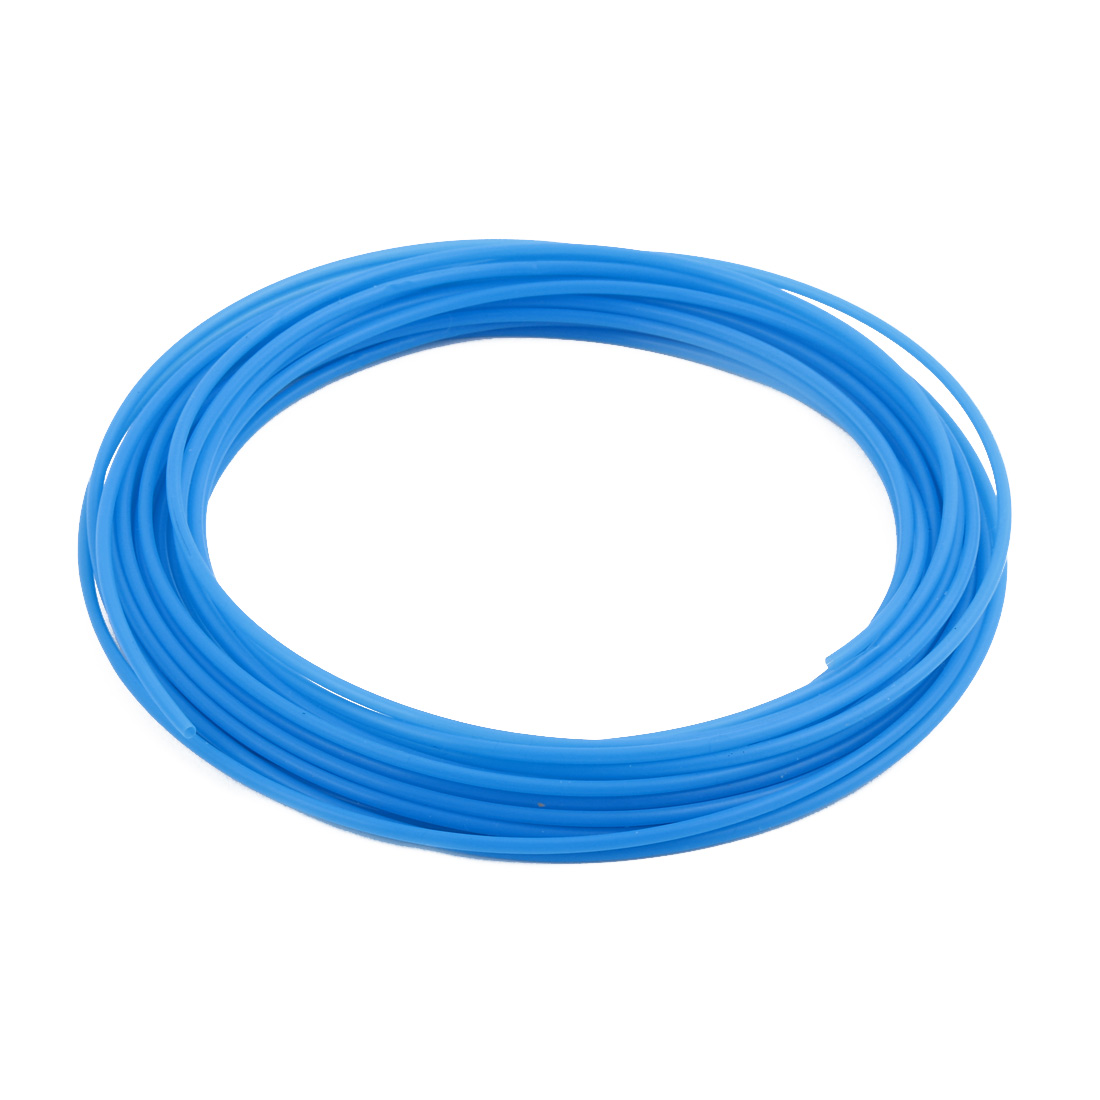 2.16mmx2.56mm PTFE Resistant High Temperature Blue Tubing 10 Meters 32.8Ft